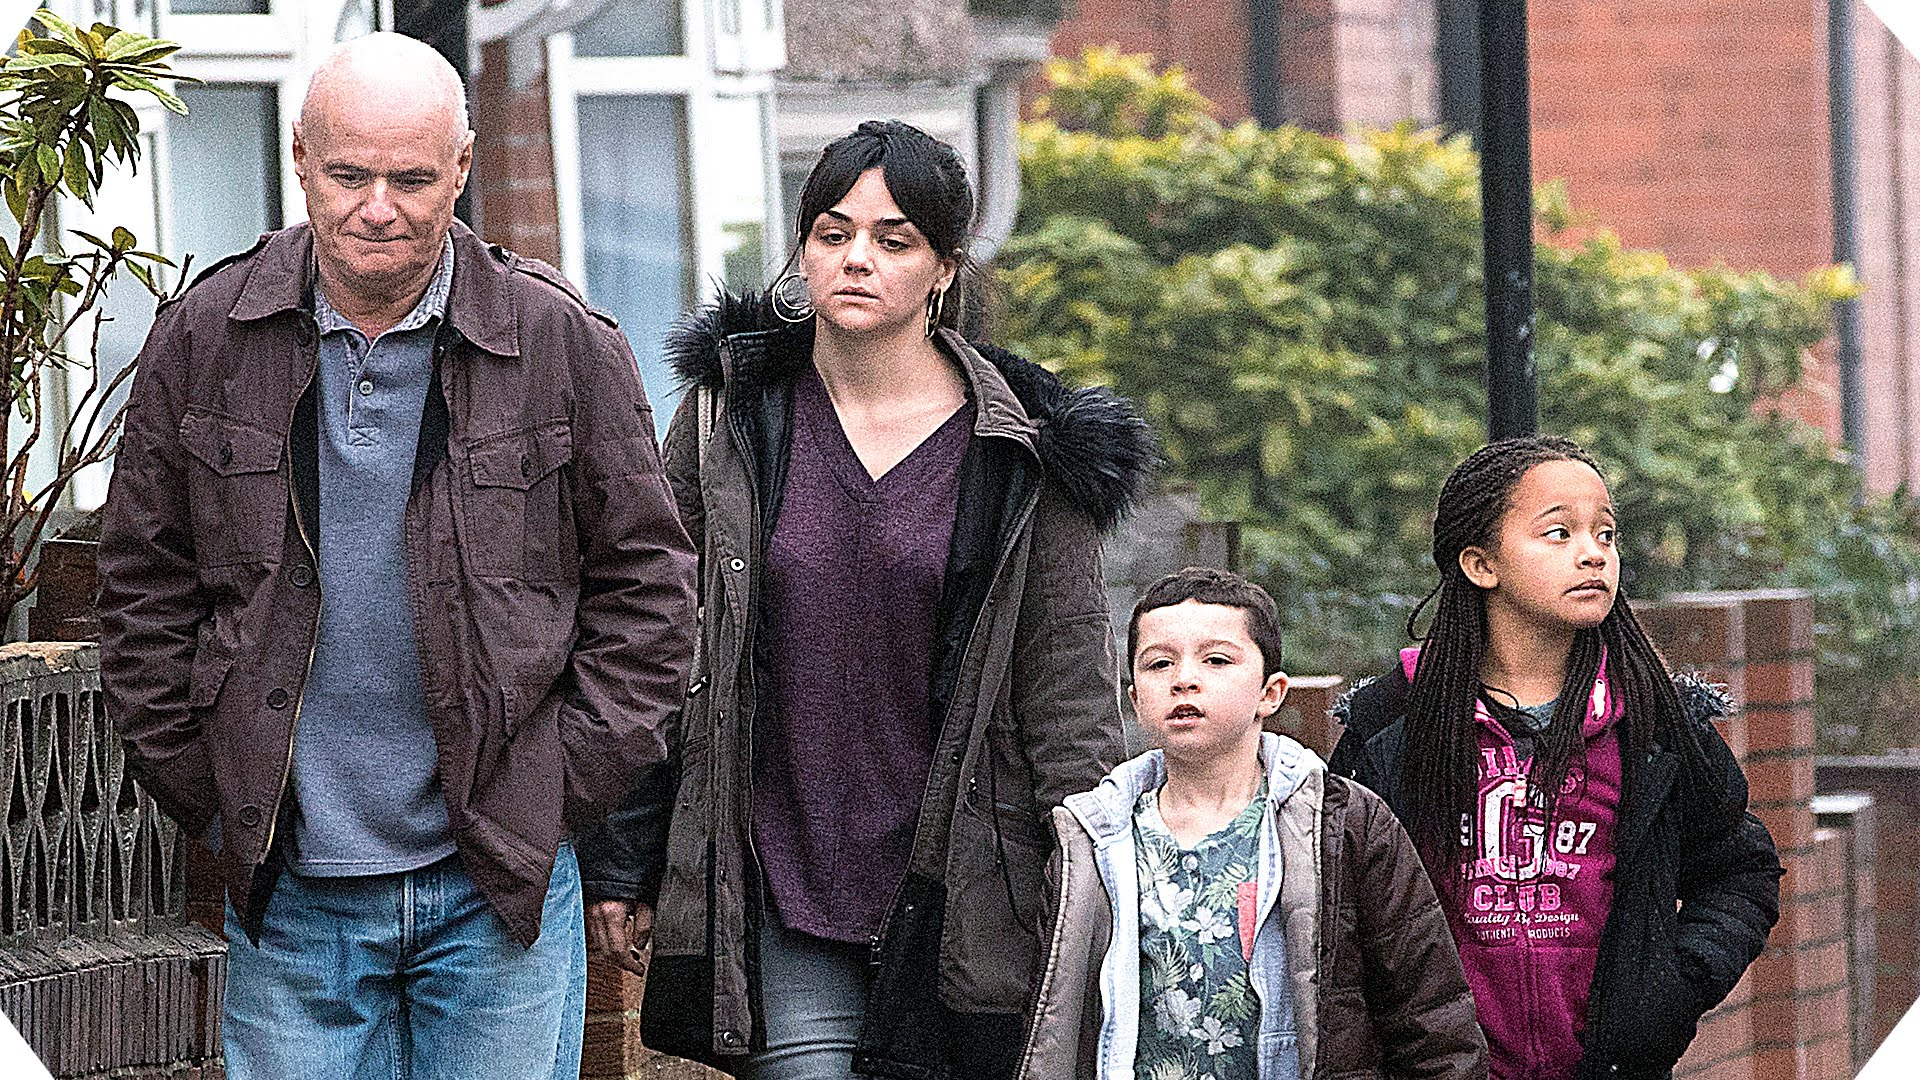 I, DANIEL BLAKE: 'NOT ENOUGH CAR CHASES'